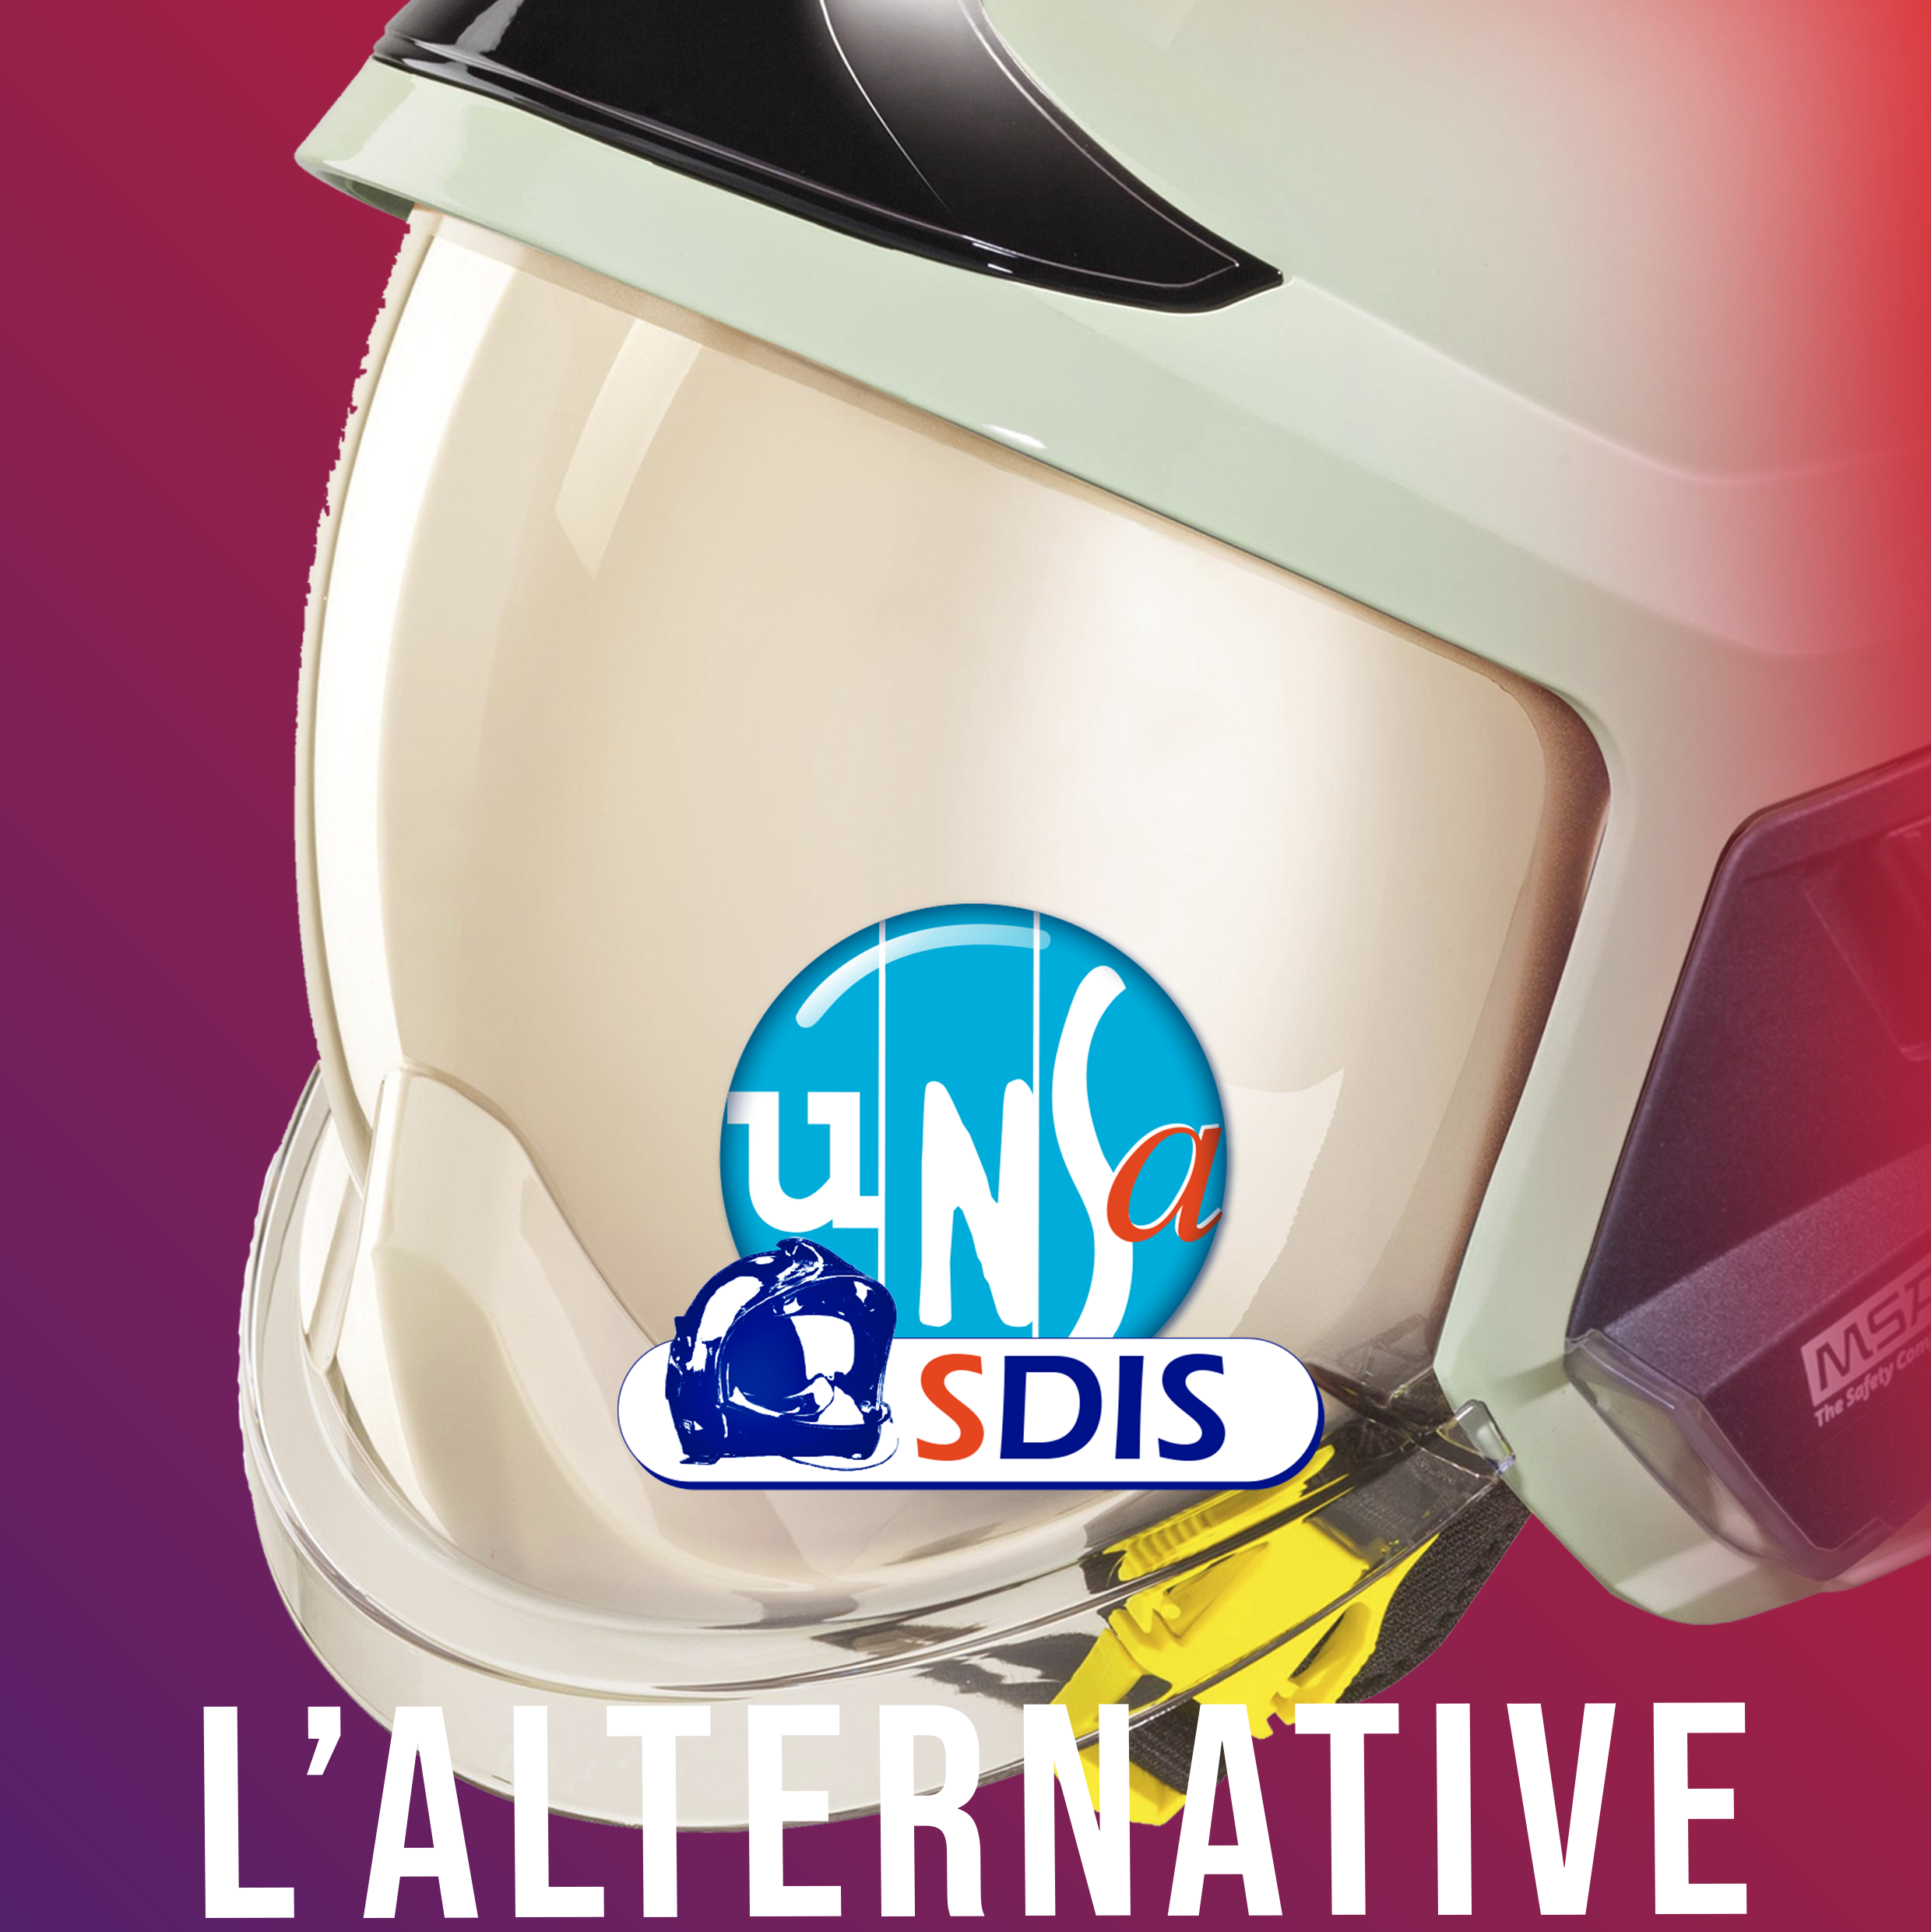 [Élections CAP A & B] L'UNSA, l'alternative pour les officiers